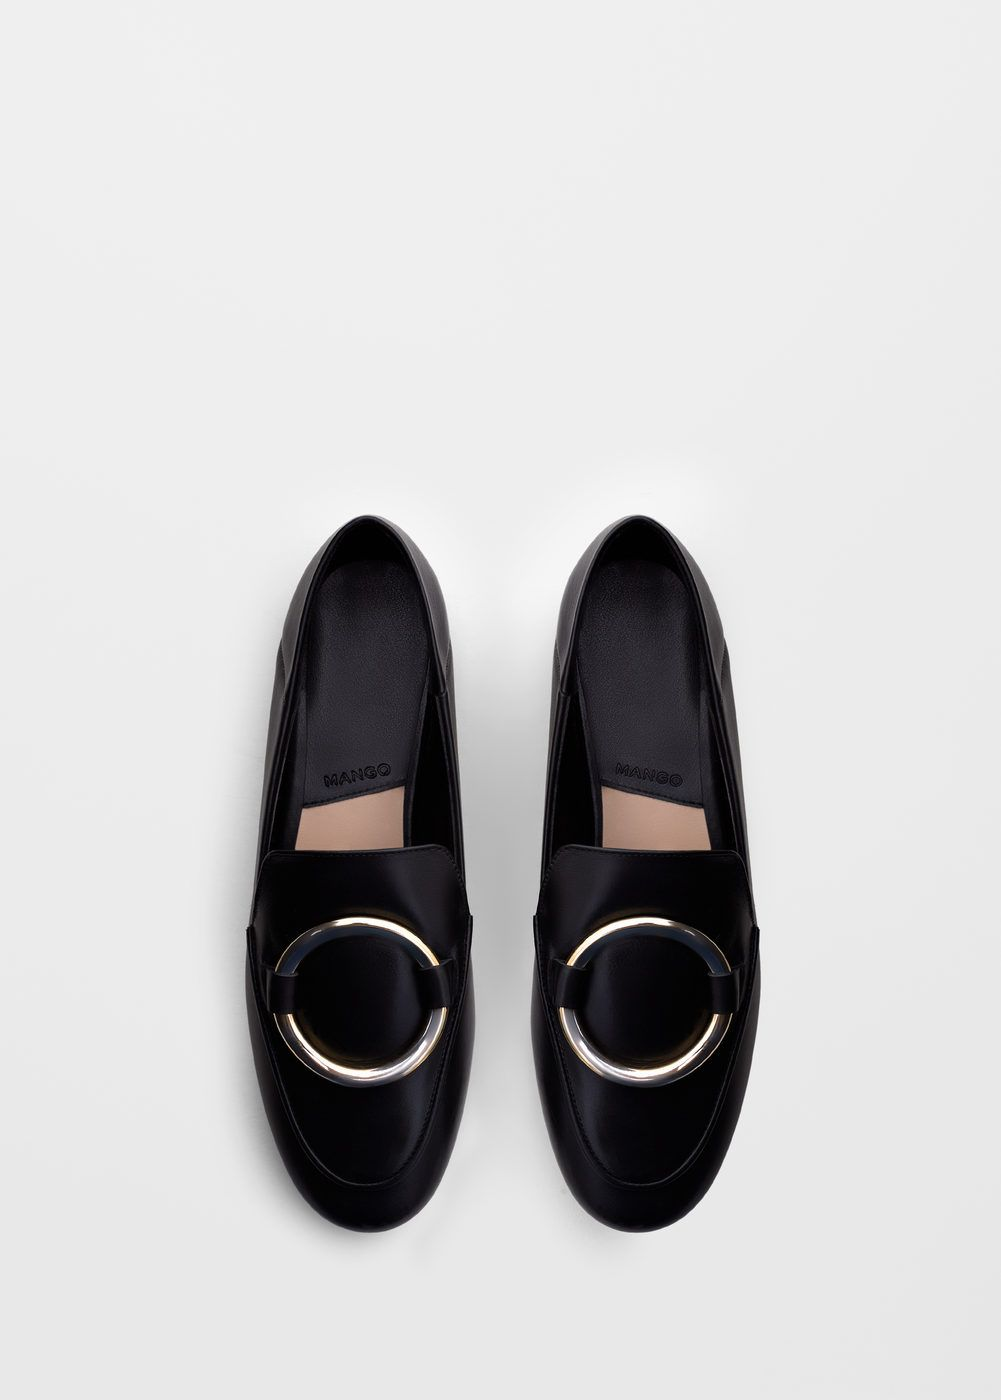 Newest Quotests Proenza Schouler Leather White Two tone Loafers